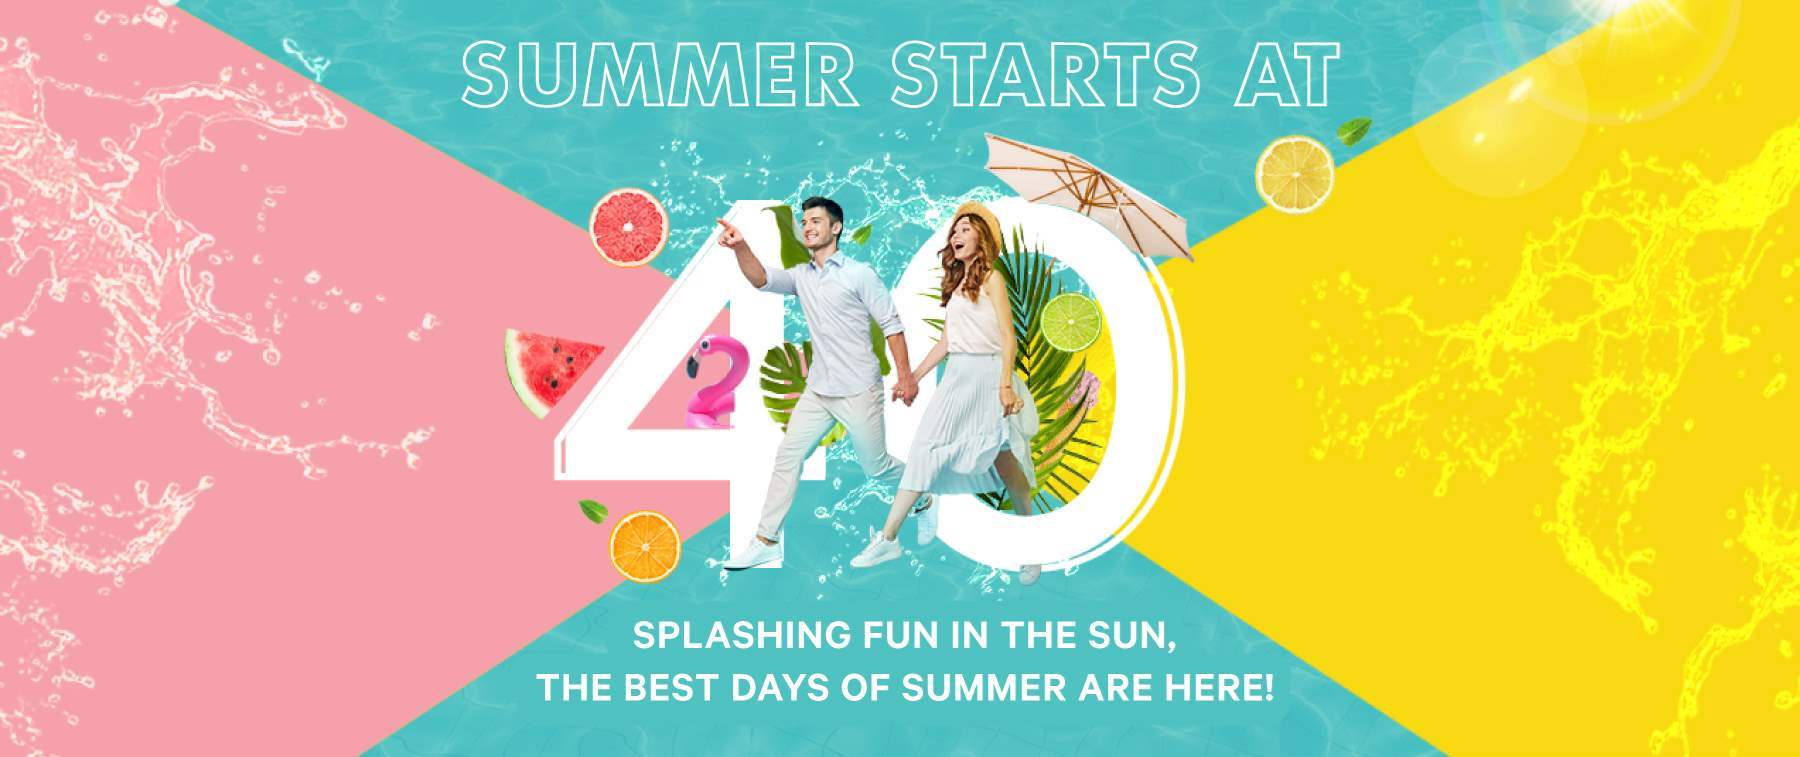 Summer starts at 40 at Le Royal Meridien Abu Dhabi